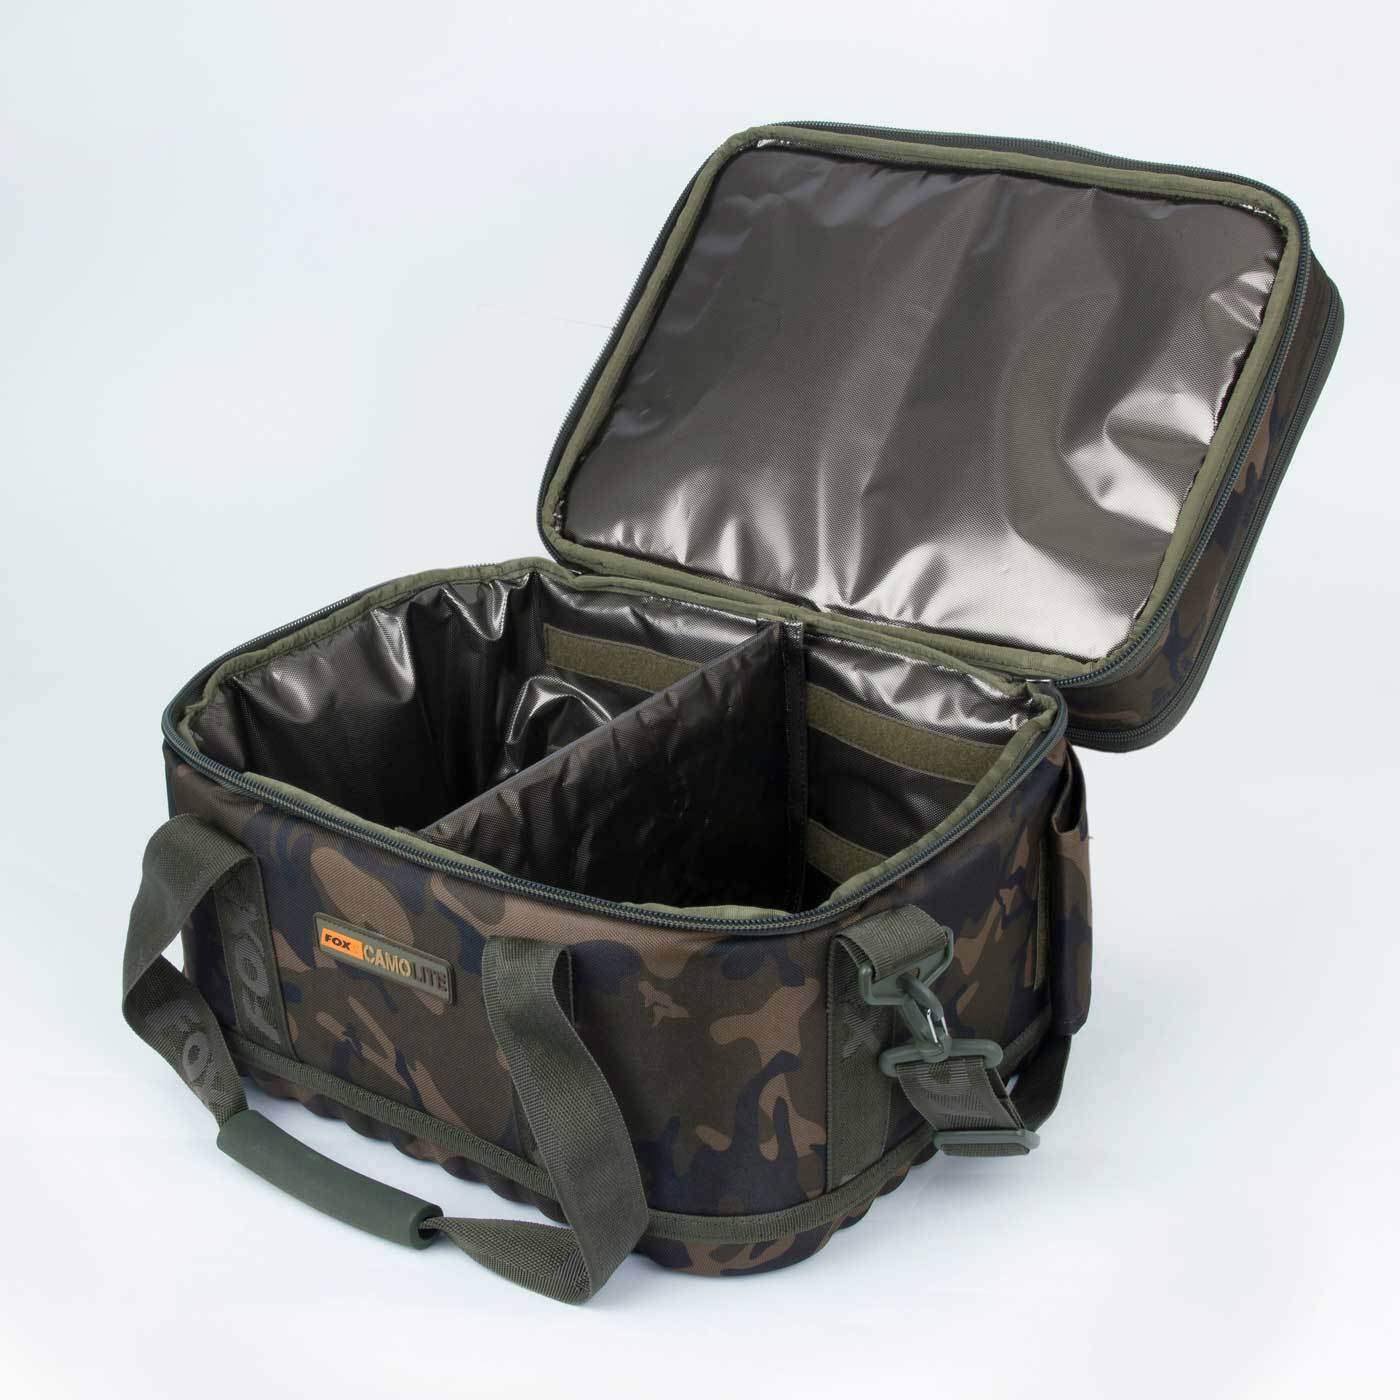 Fox Camolite Low Level Coolbag Brand New FREE Delivery - CLU299